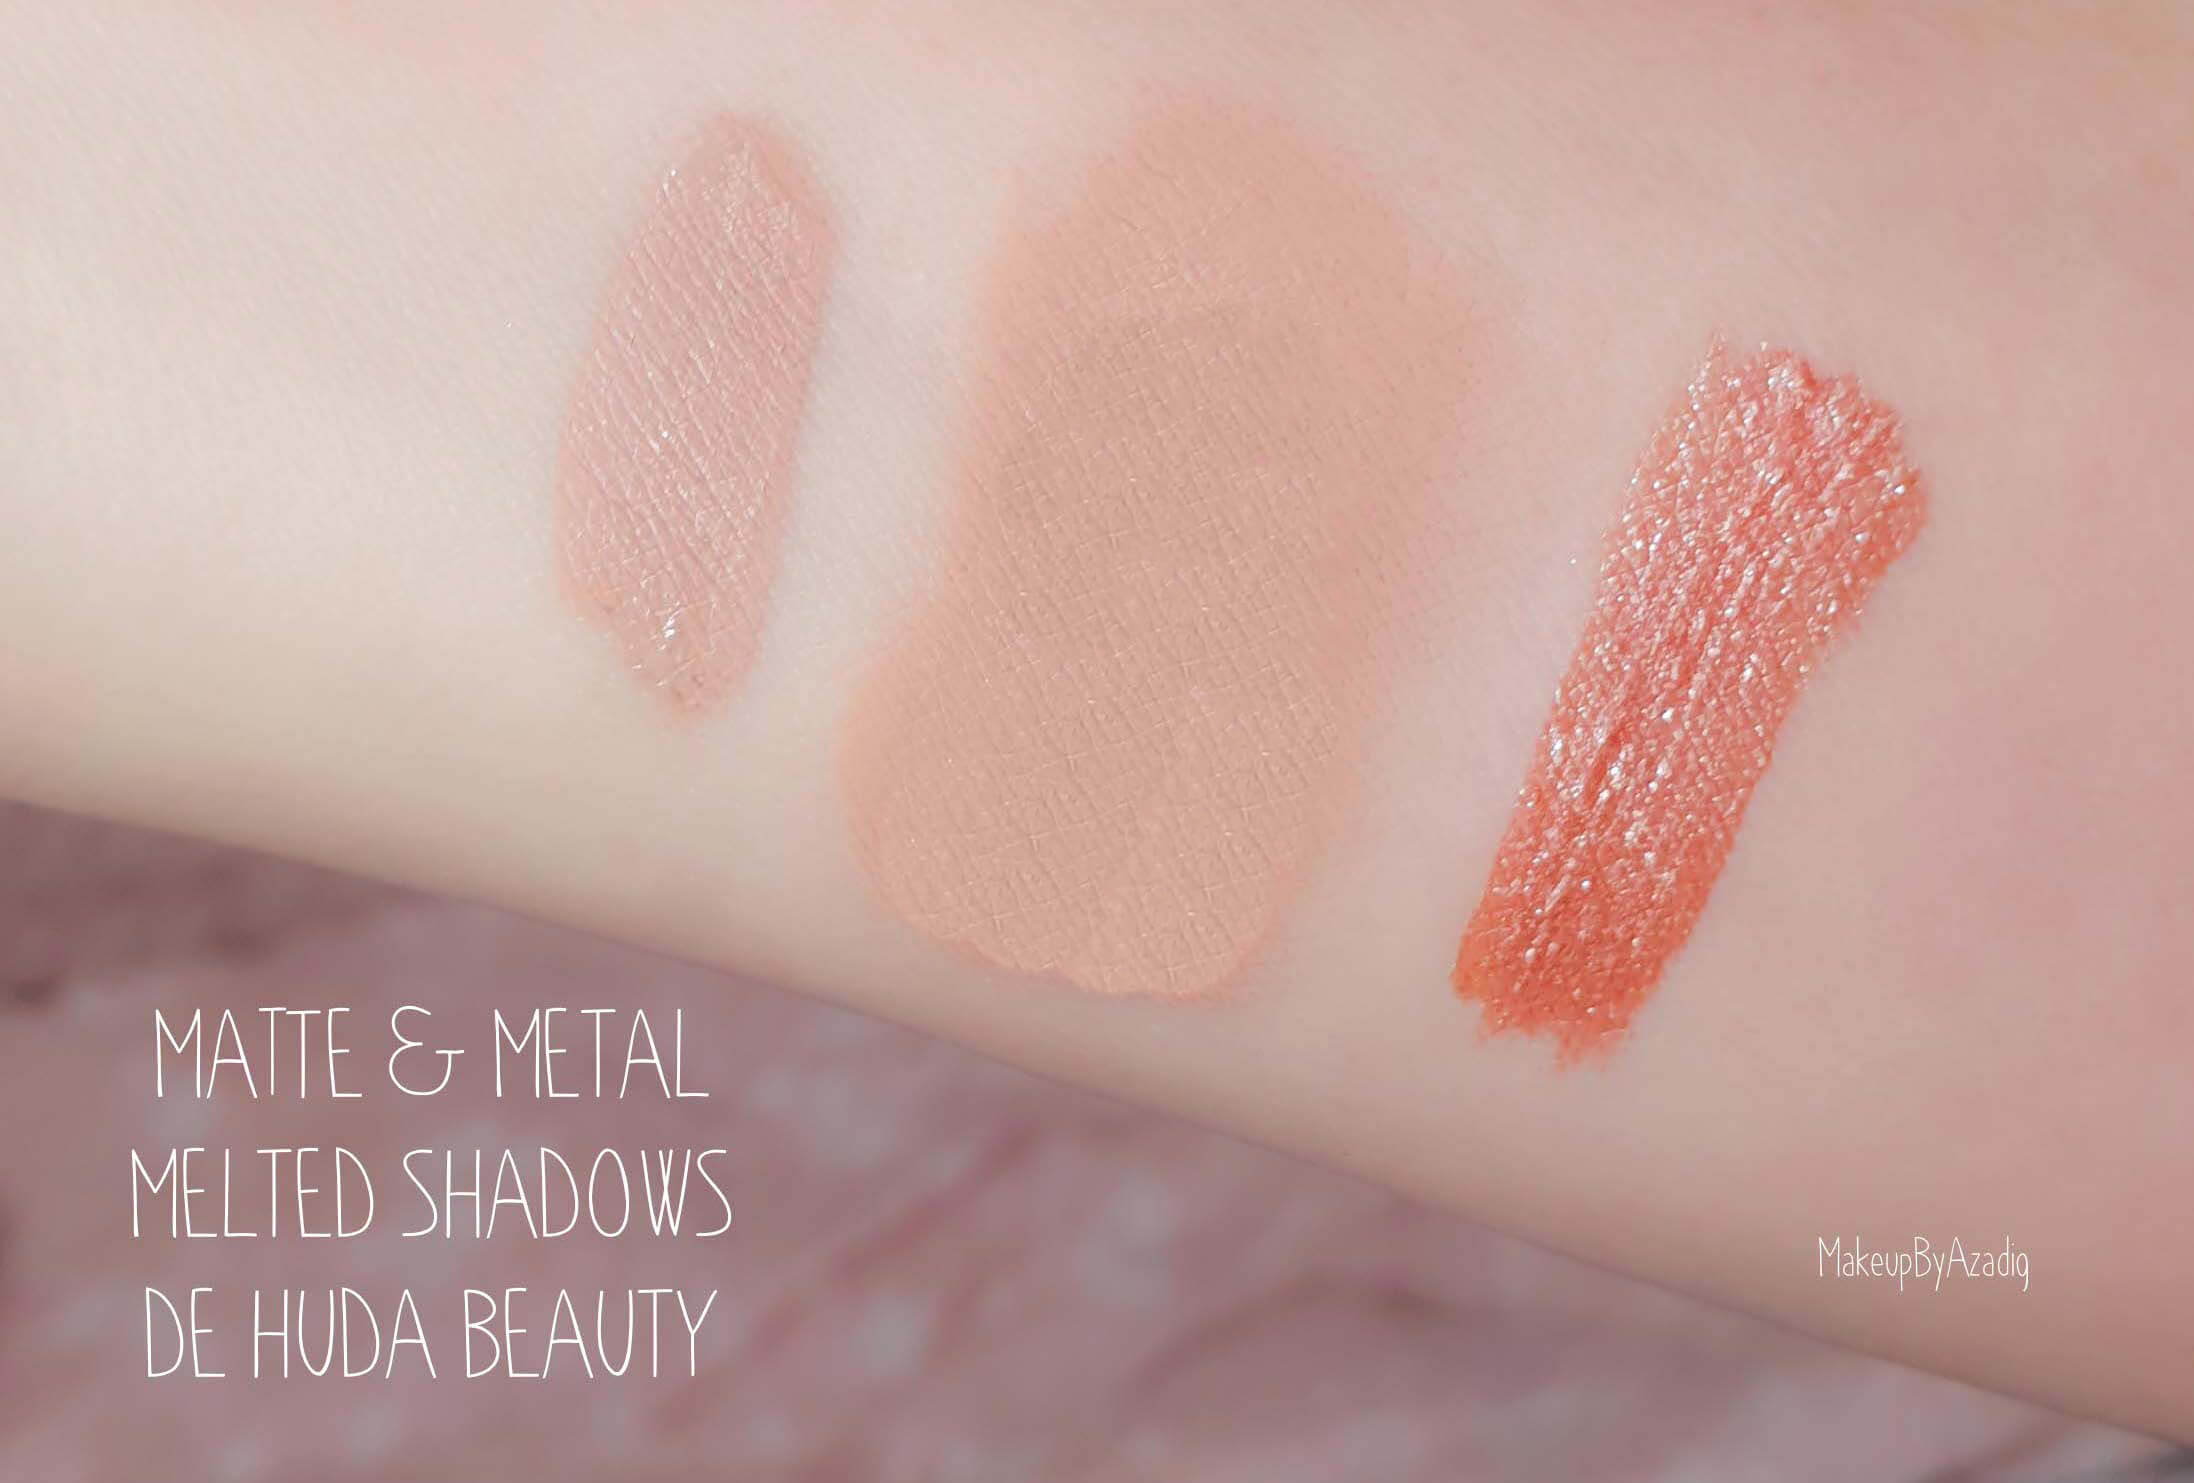 revue-review-matte-metal-melted-shadows-eyeshadows-huda-beauty-champagne-new-nude-palette-avis-prix-tenue-france-makeupbyazadig-swatches